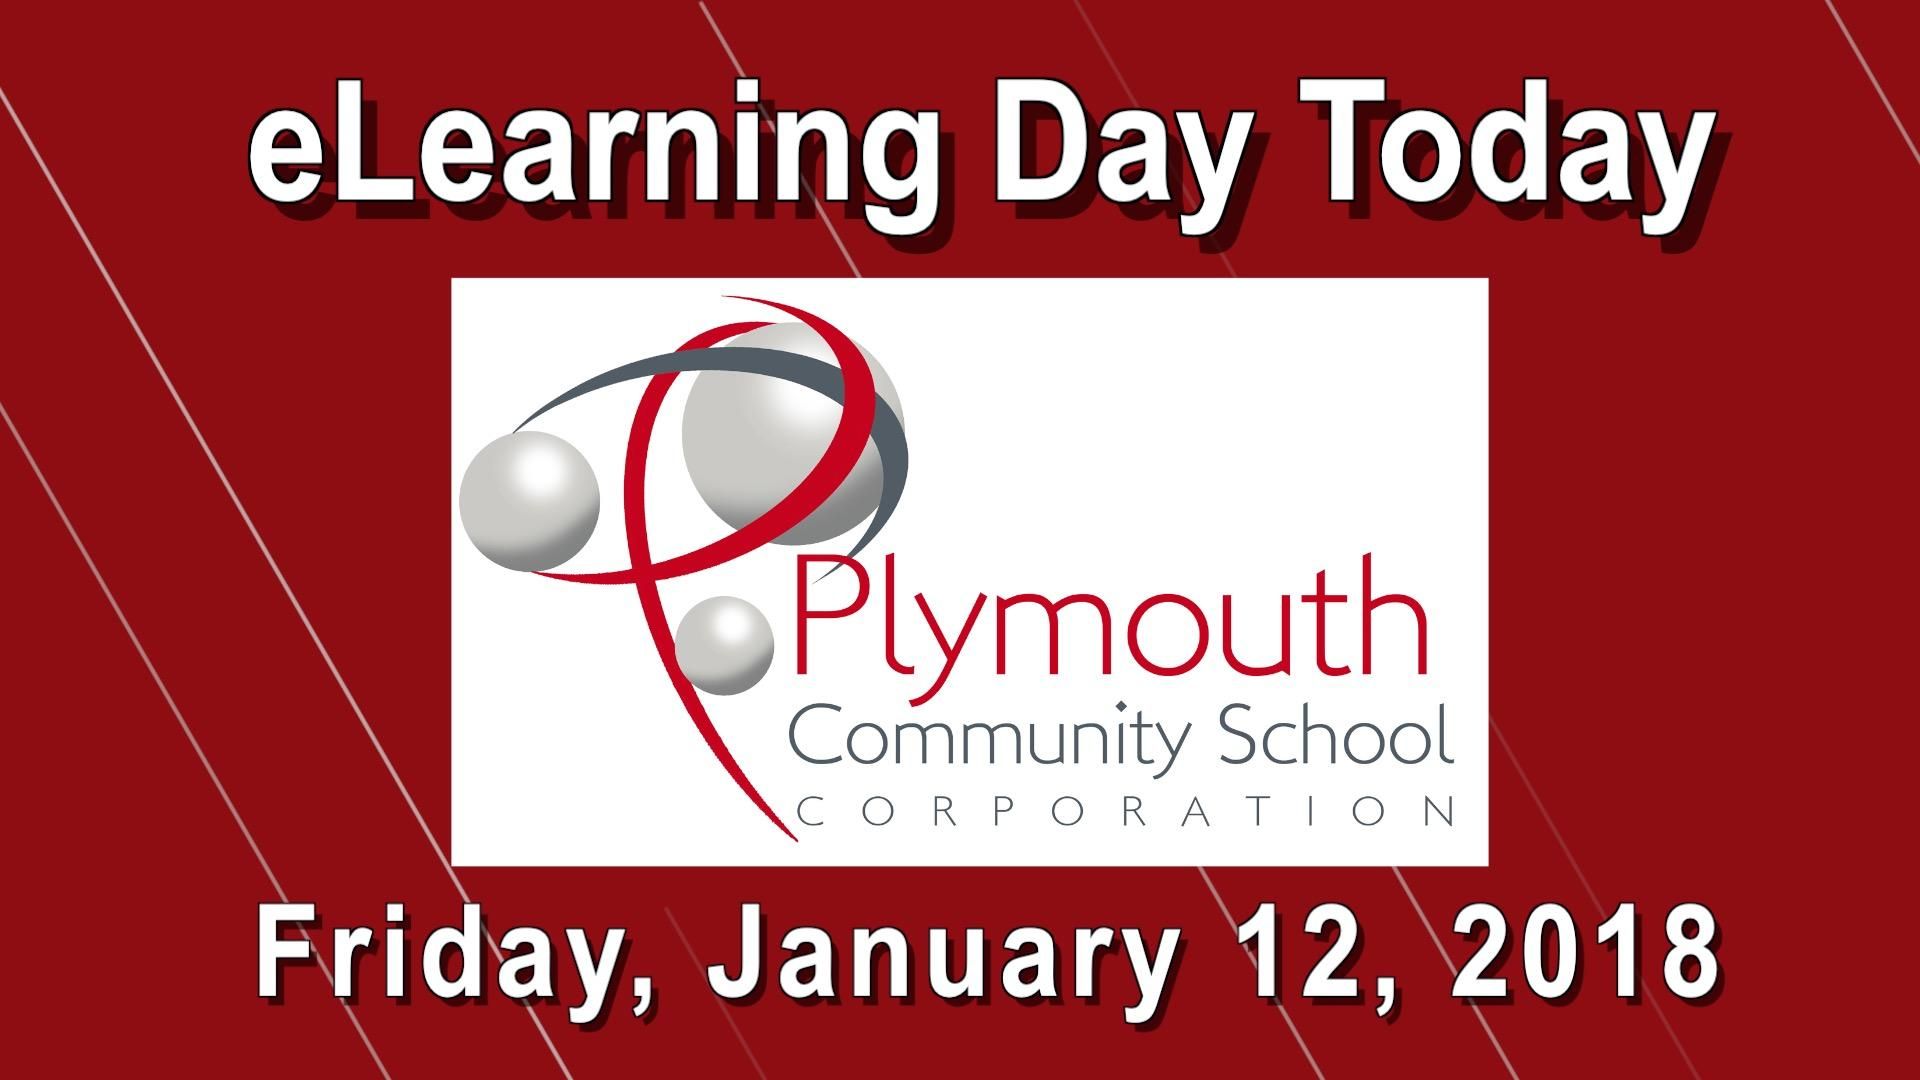 eLearning Day on Friday, January 12, 2018